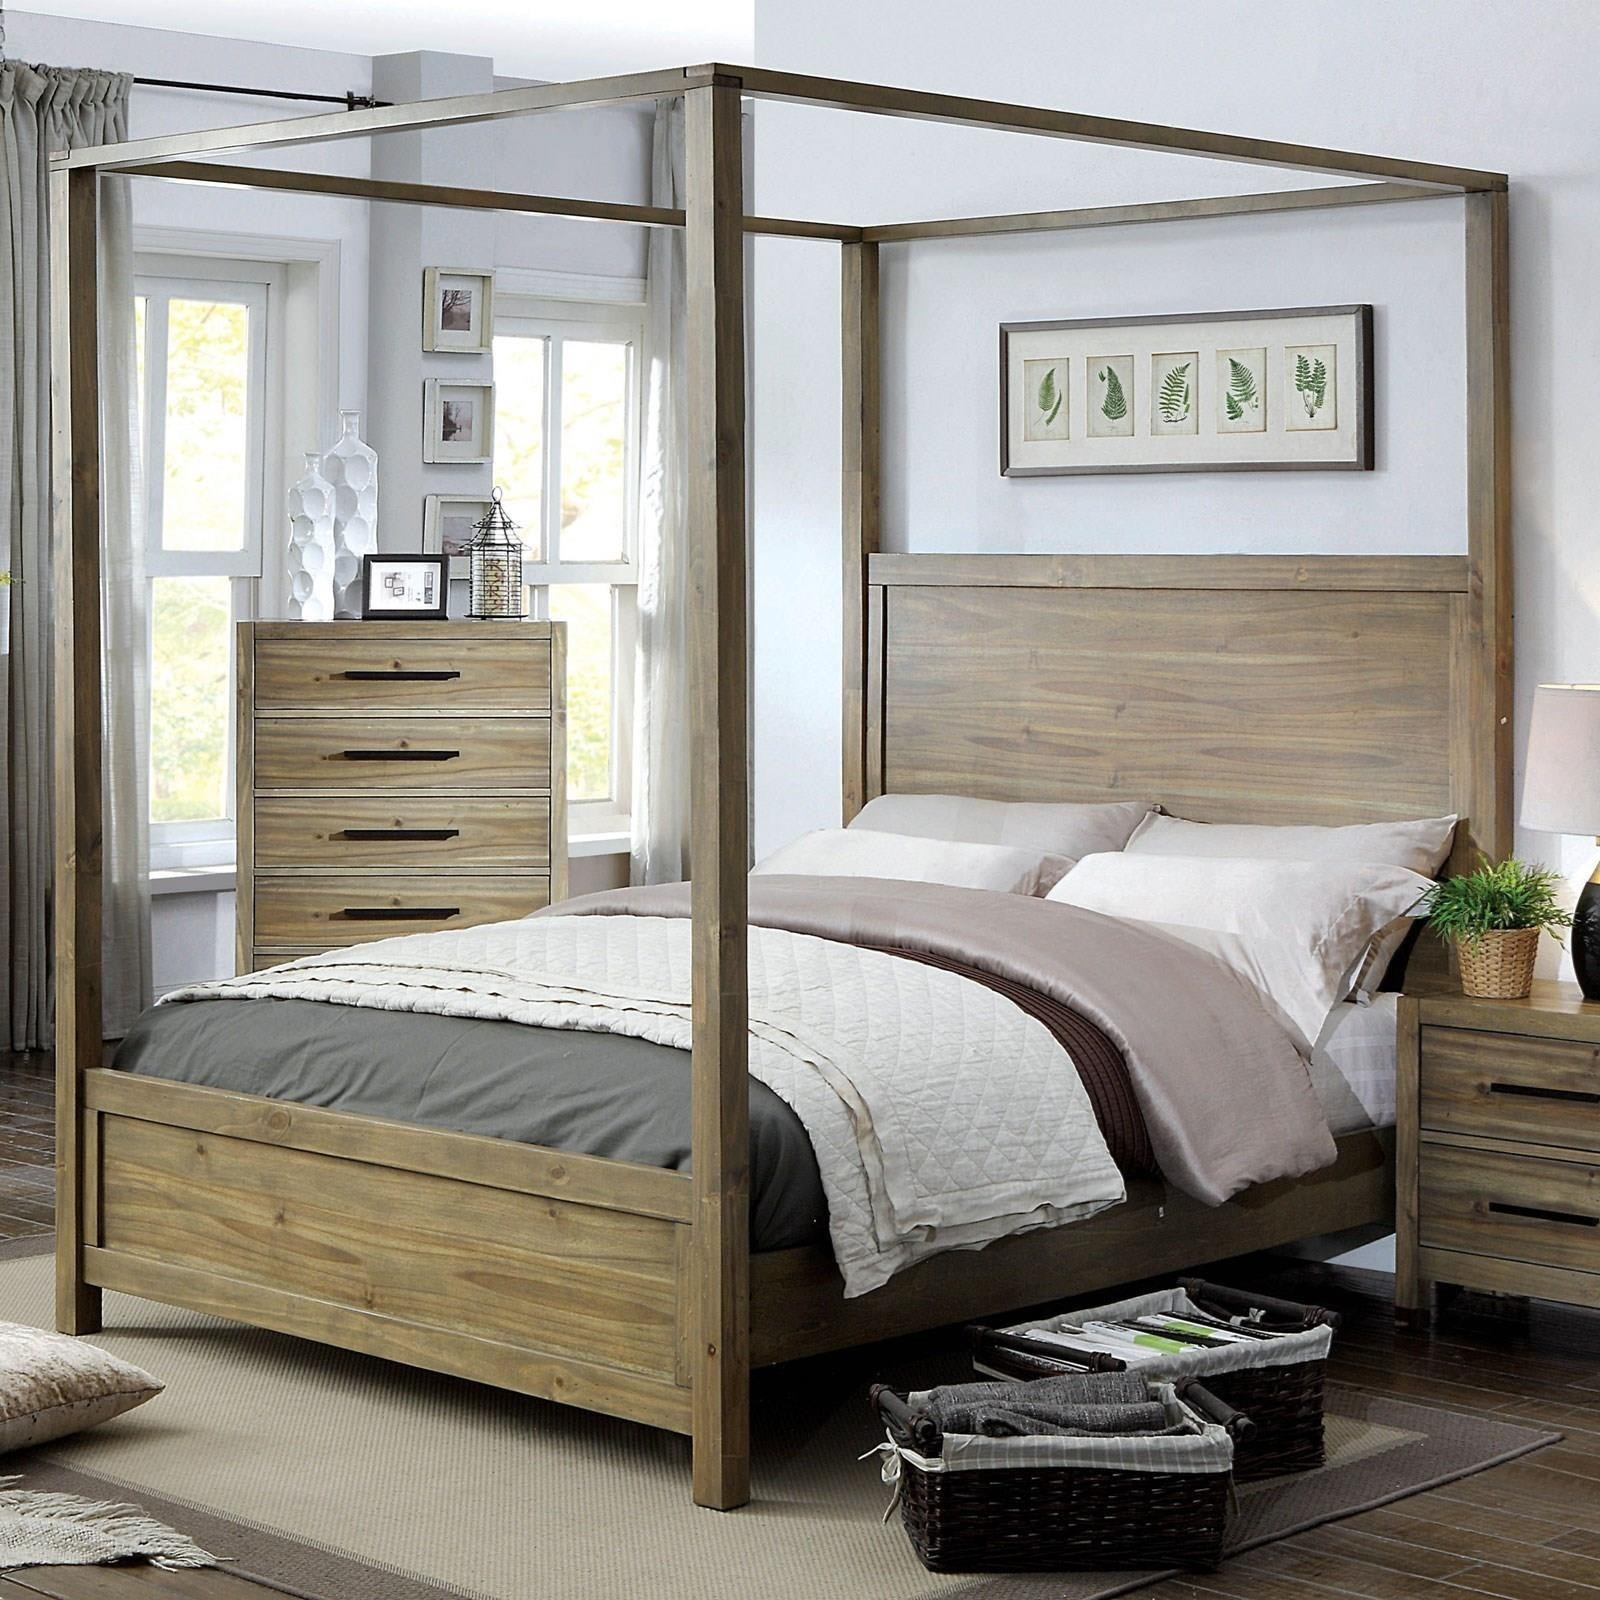 Picture of: Furniture Of America Foa Garland Cm7355ek Bed Vintage King Size Weathered Oak Canopy Bed Del Sol Furniture Canopy Beds